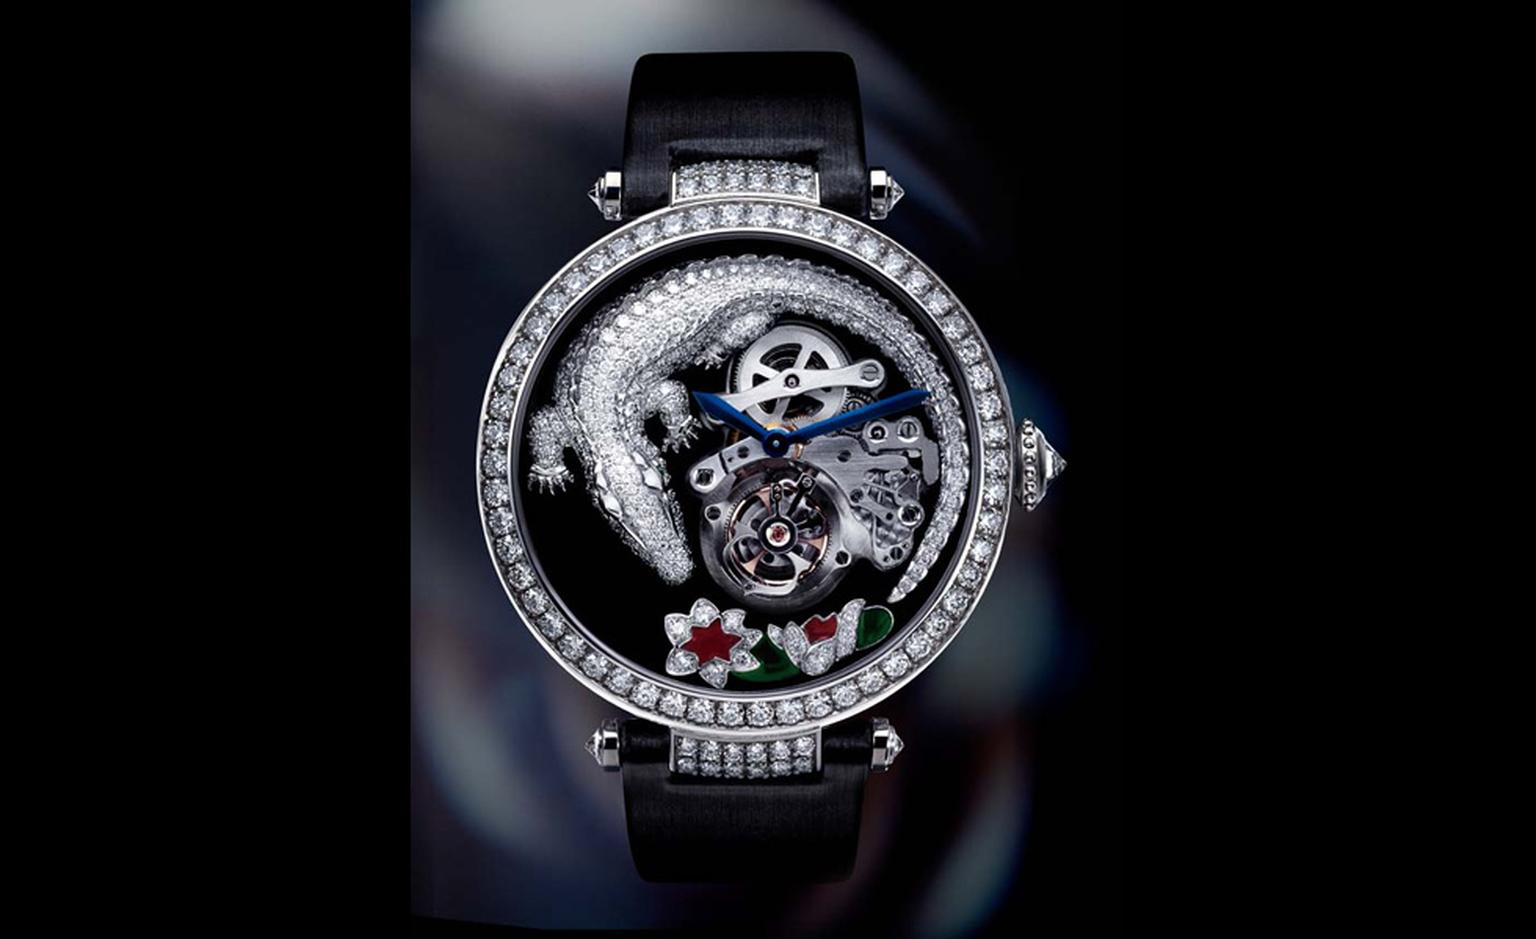 Cartier's Crocodile tourbillon watch in white gold with diamonds. Crocodile motifs were first used at Cartier following a commission from the Mexican film diva María Félix for a crocodile necklace.